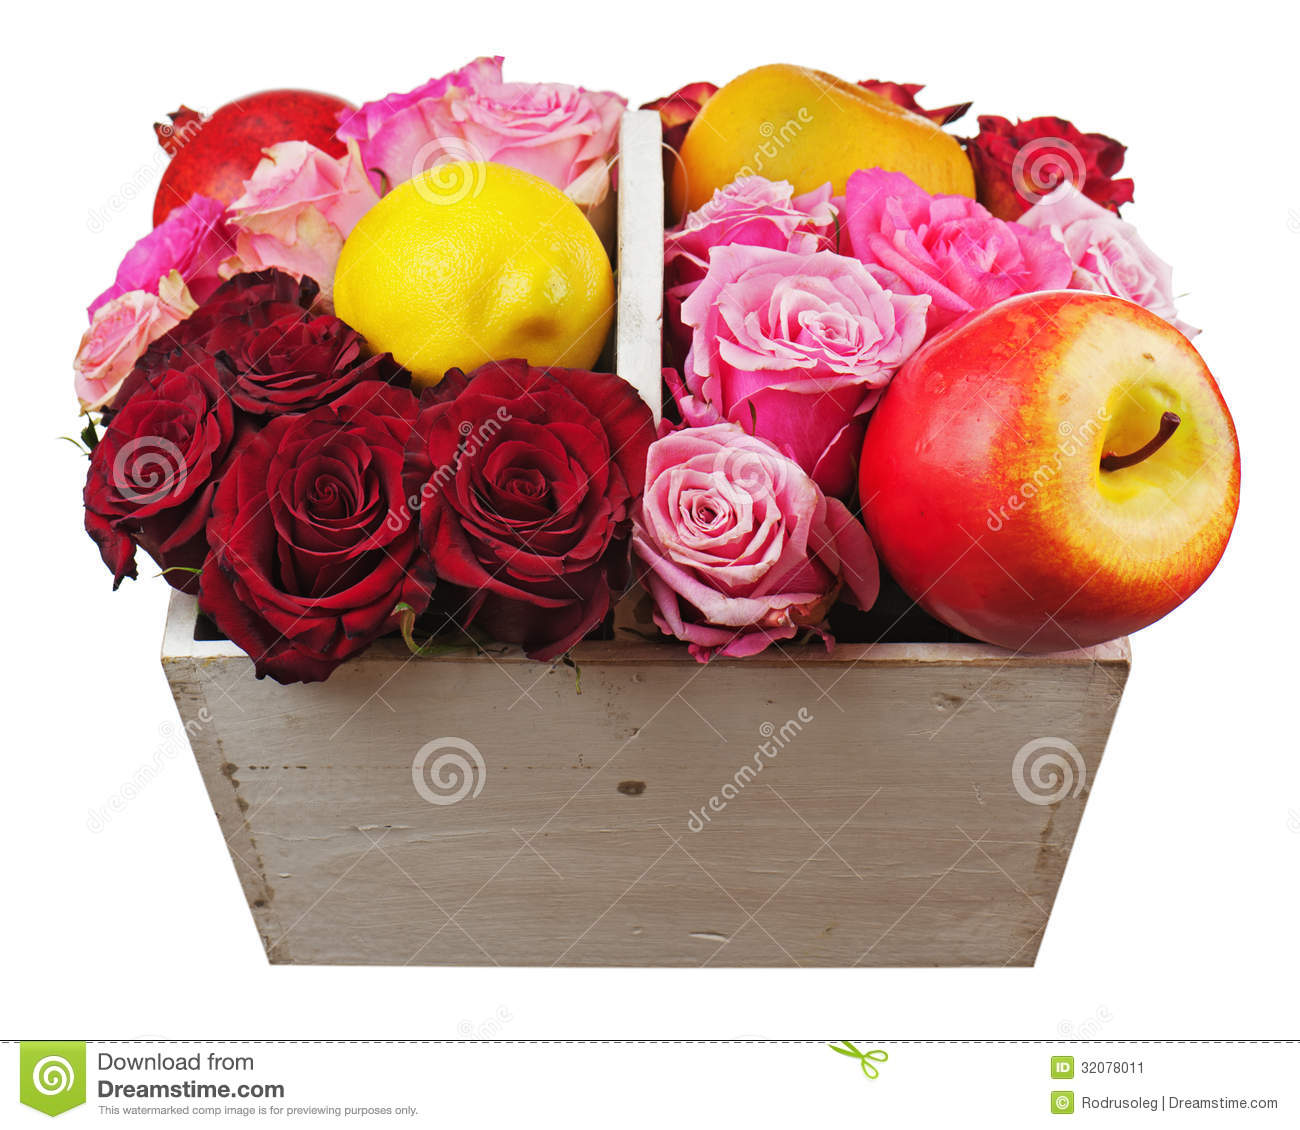 Flower arrangement of red roses and fruits in wooden basket isolated on white background.